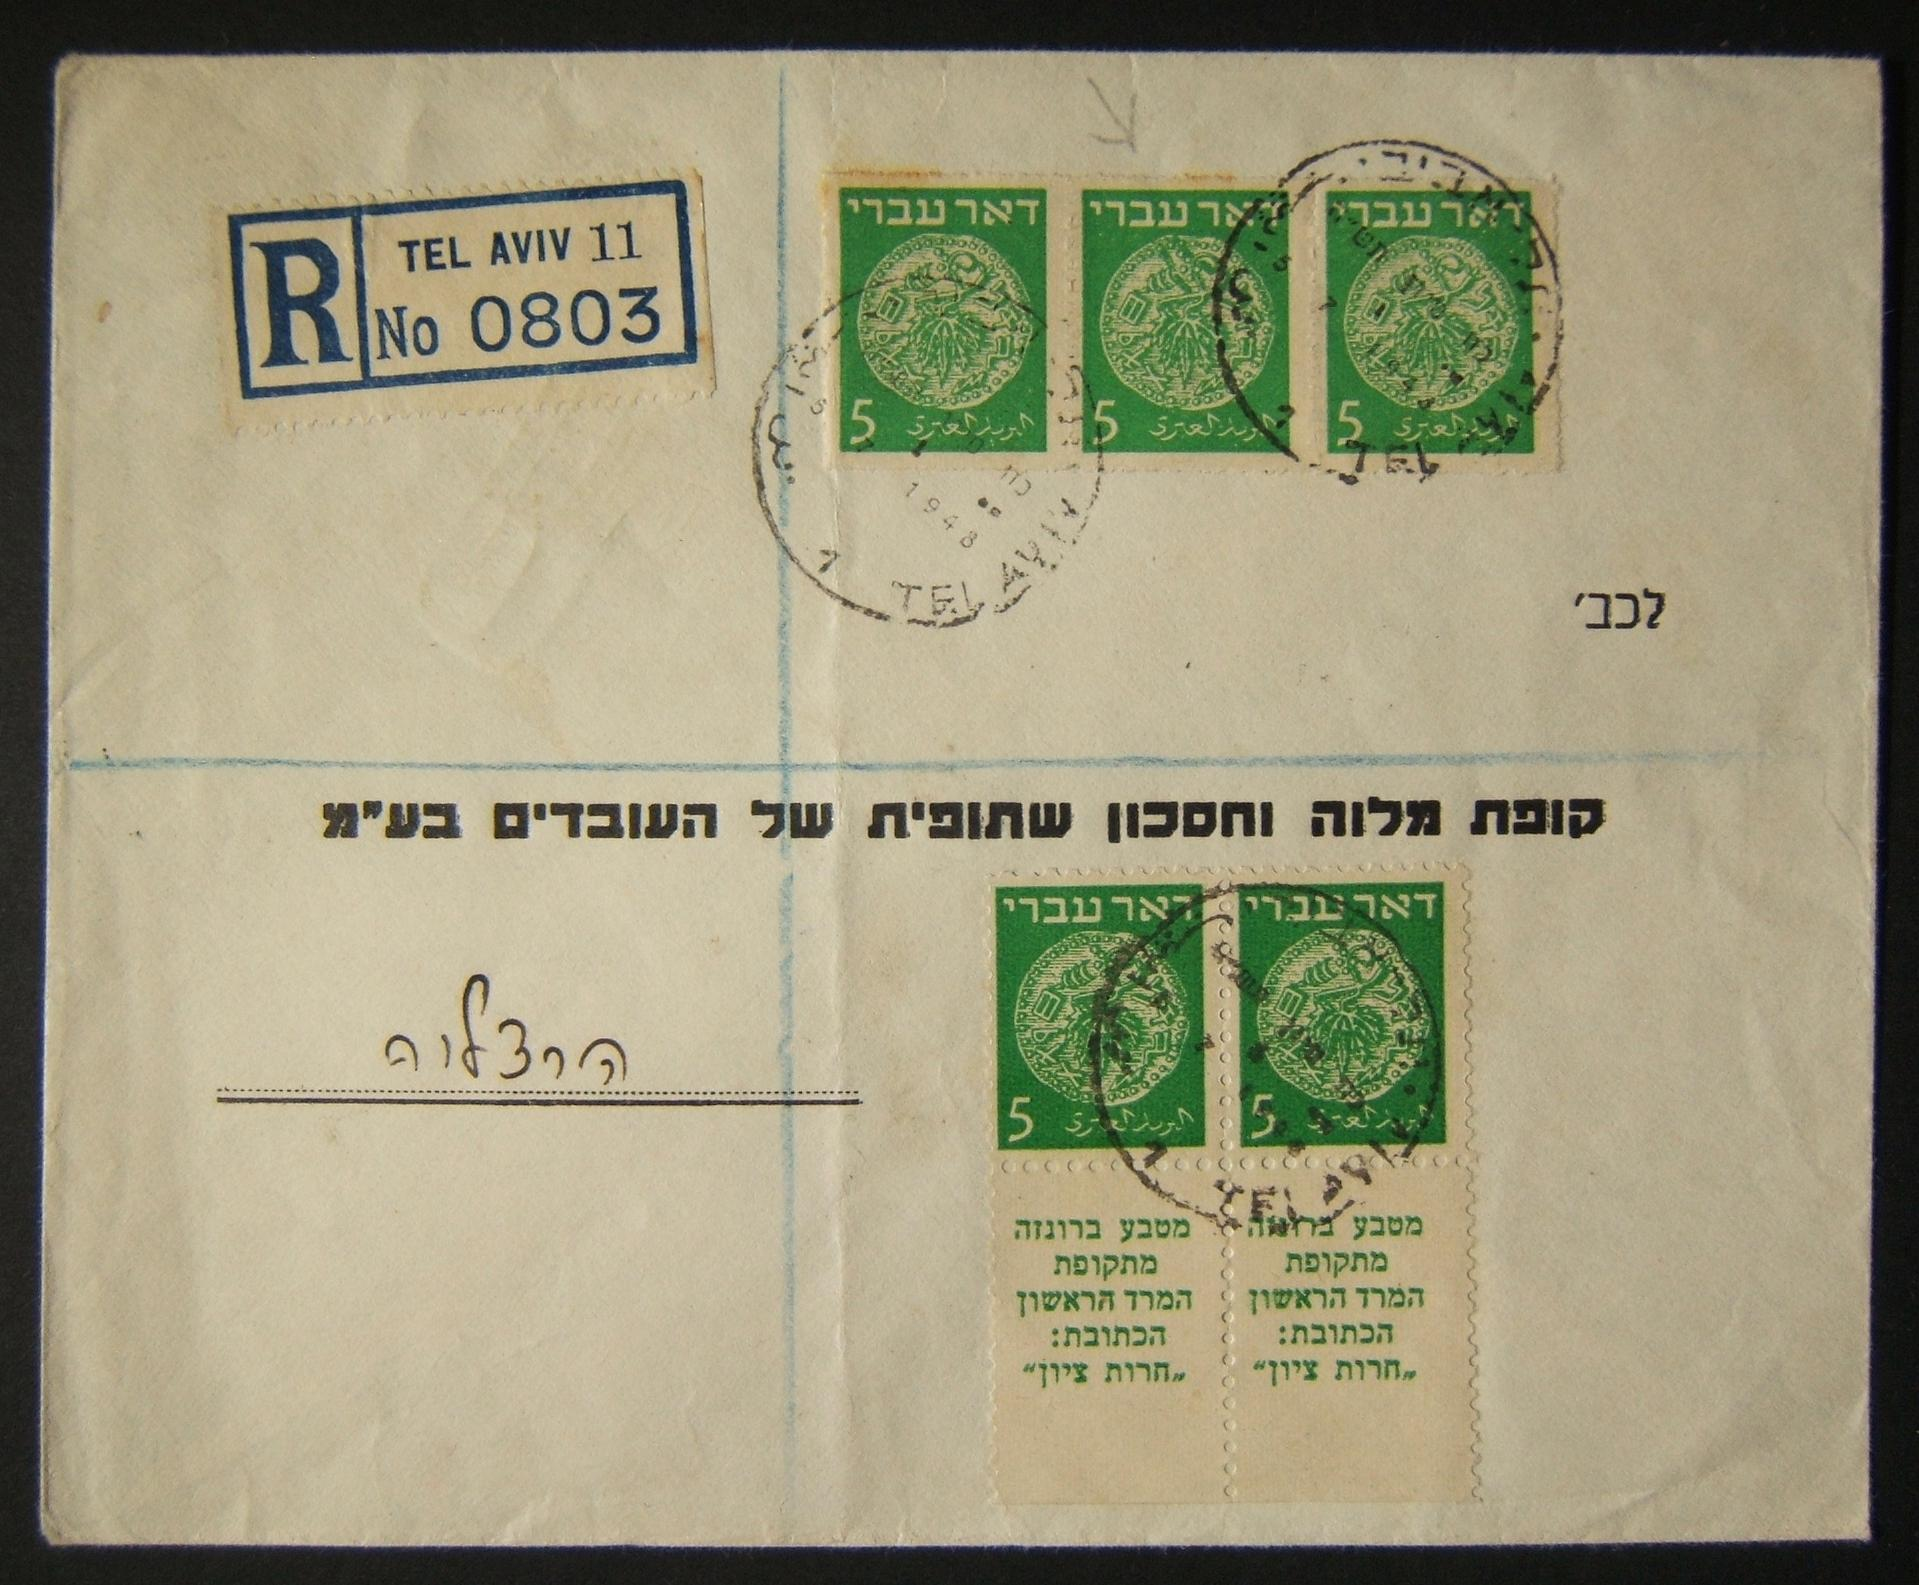 Doar Ivri PO's, rates & routes: 5-7-1948 commercial registered cover ex TLV to HERTSELIYA franked 25m at the DO-1 rate (10m letter + 15m registration) using perf. mix of horizontal